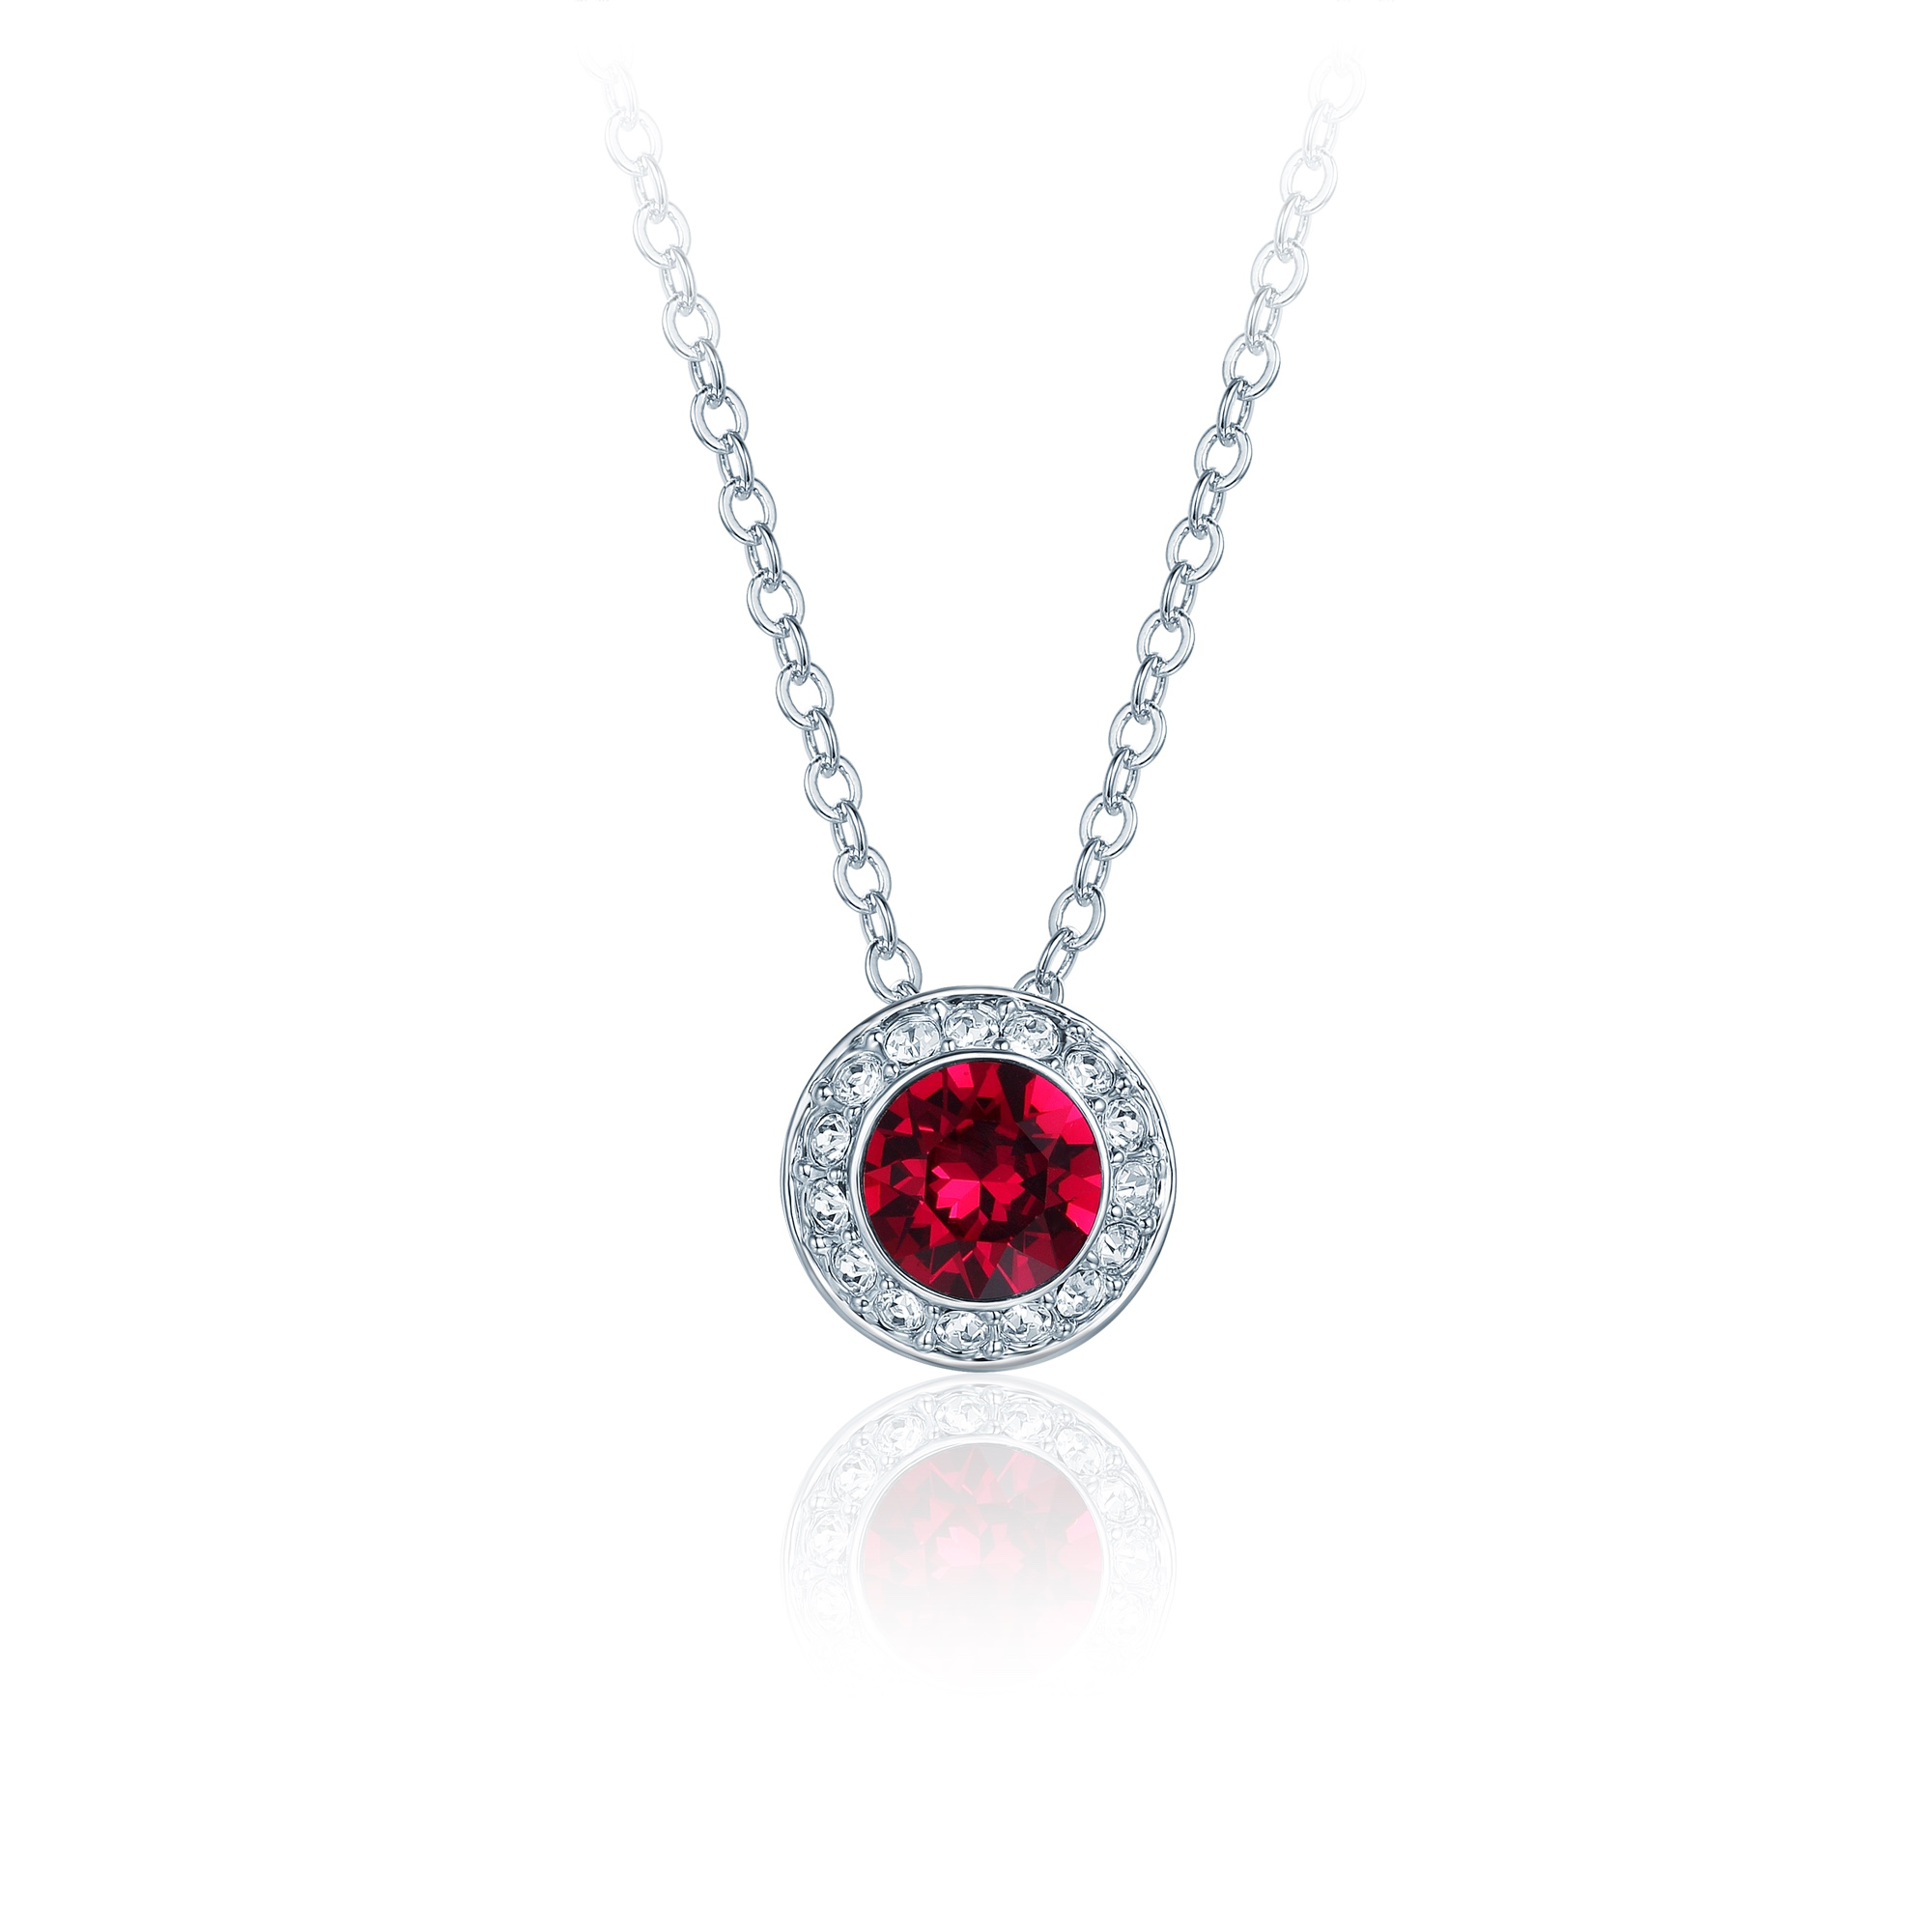 necklace crystal media red siam bridal teardrop jewelry bridesmaid ruby swarovski pendant